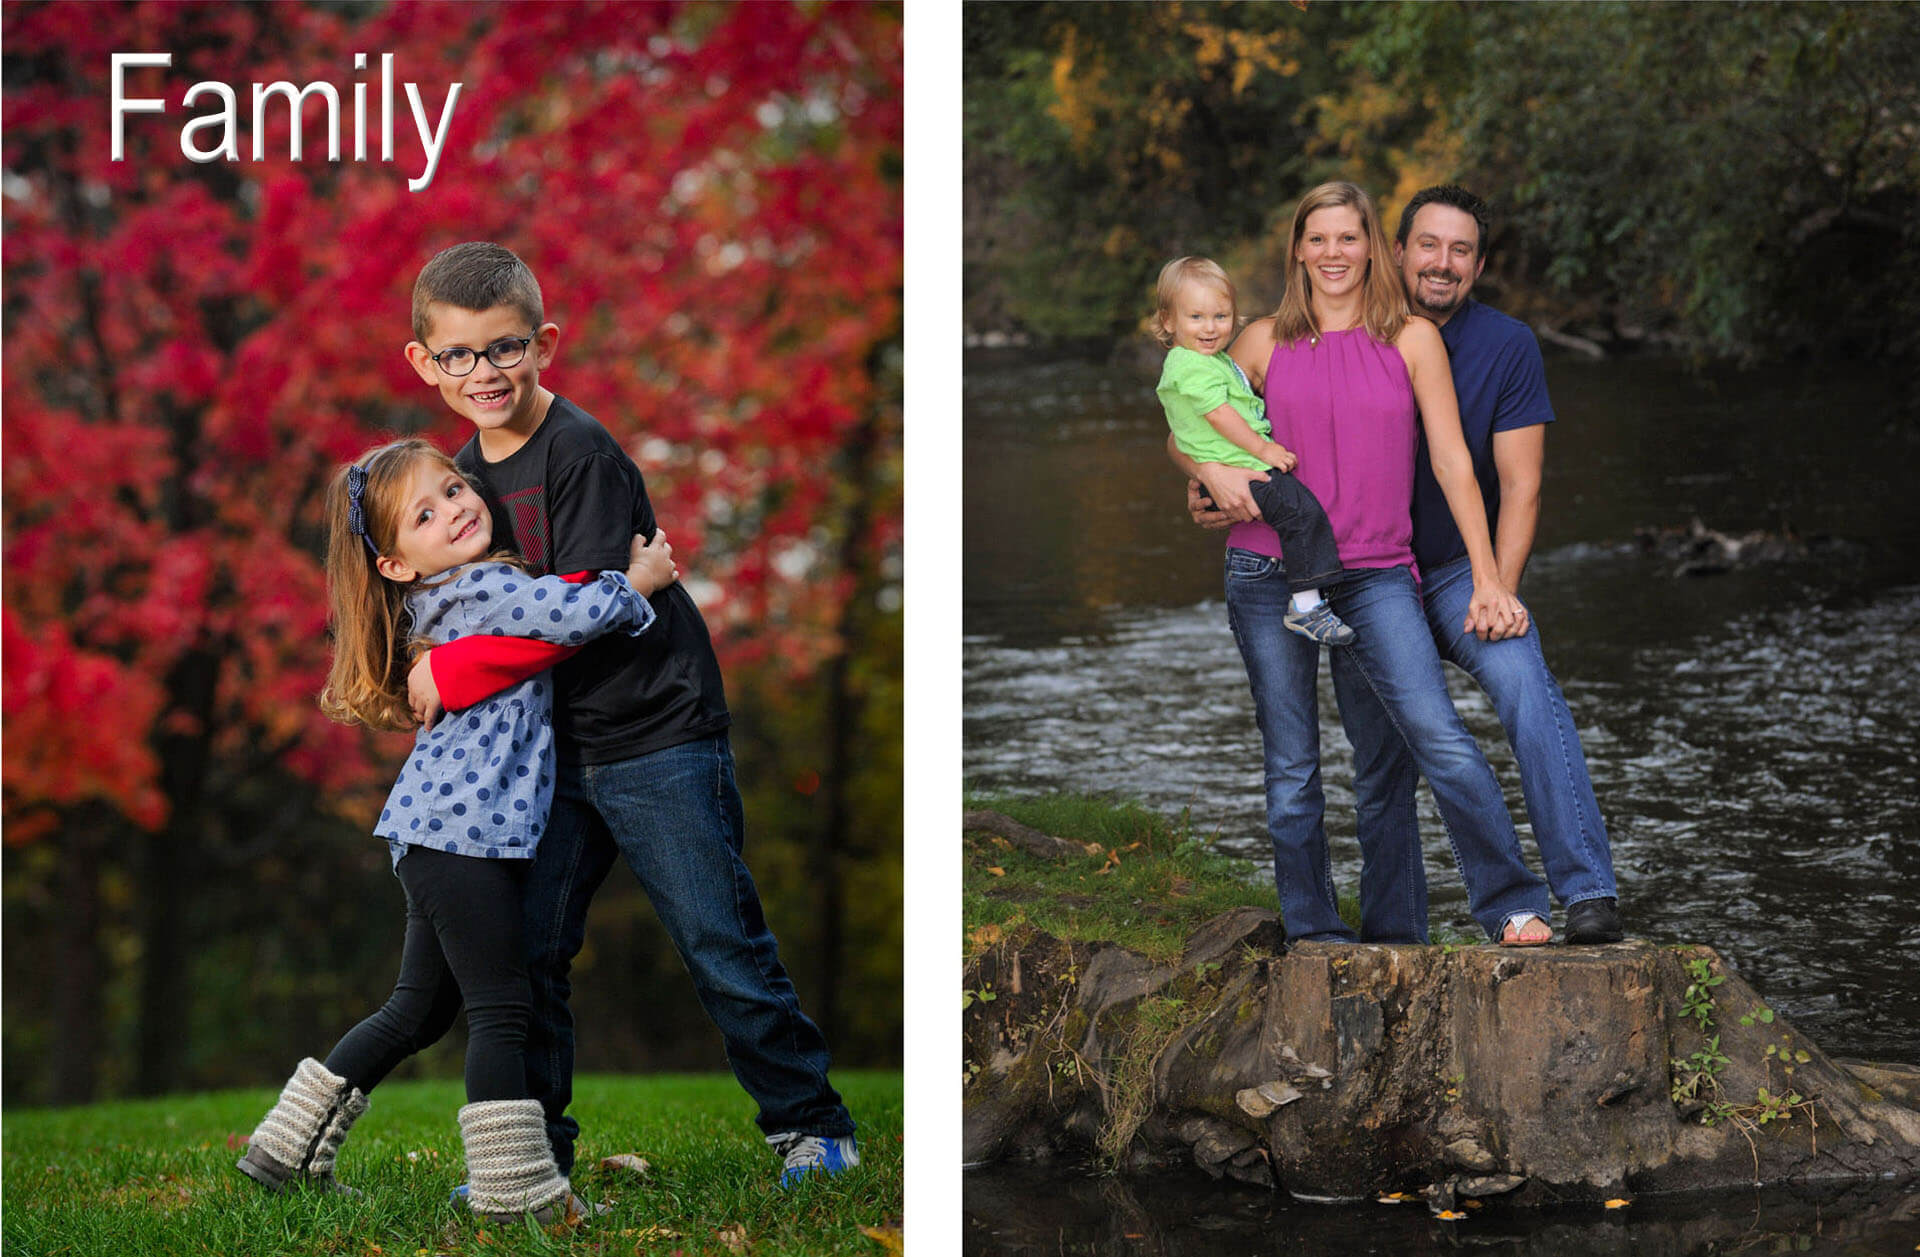 Troy family photographer photographs families all over the Troy, Michigan area to create fun, candid moments with families.